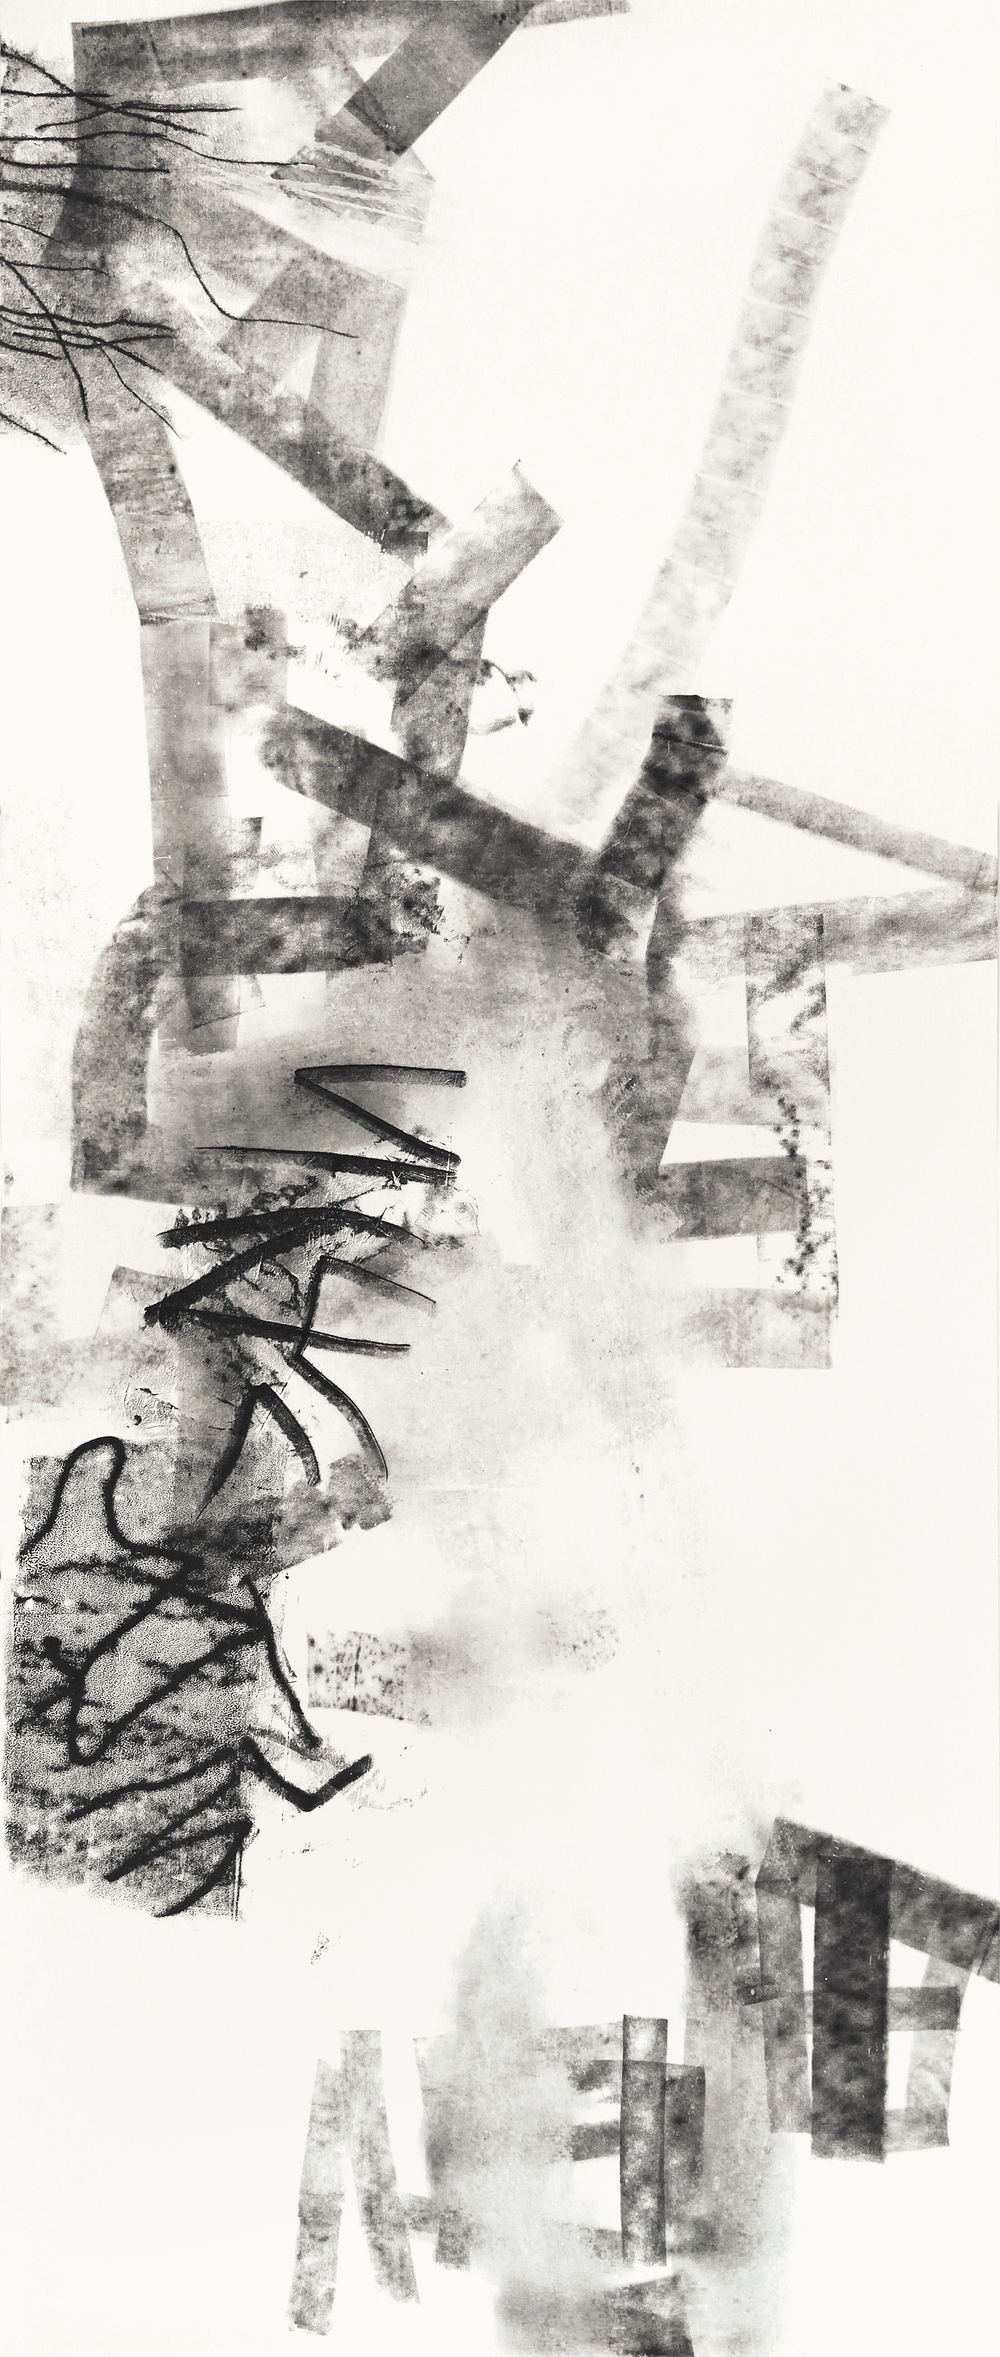 Untitled (rdl.12.13), 2012 ink and graphite on paper 50 x 42 inches